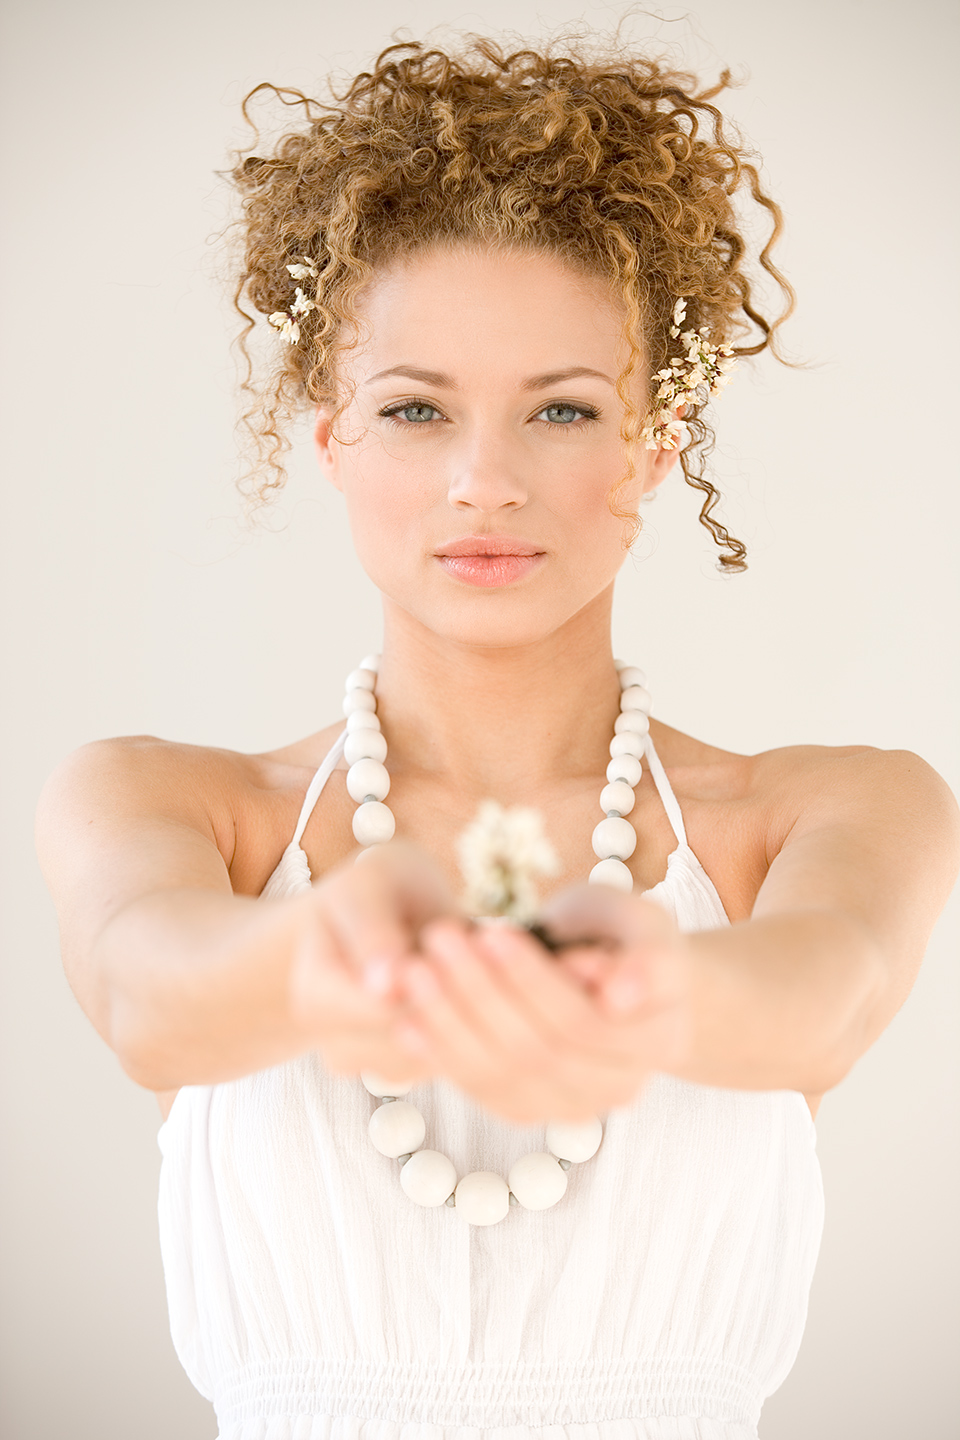 Young woman, white dress, pearl necklace, curly hair, gift